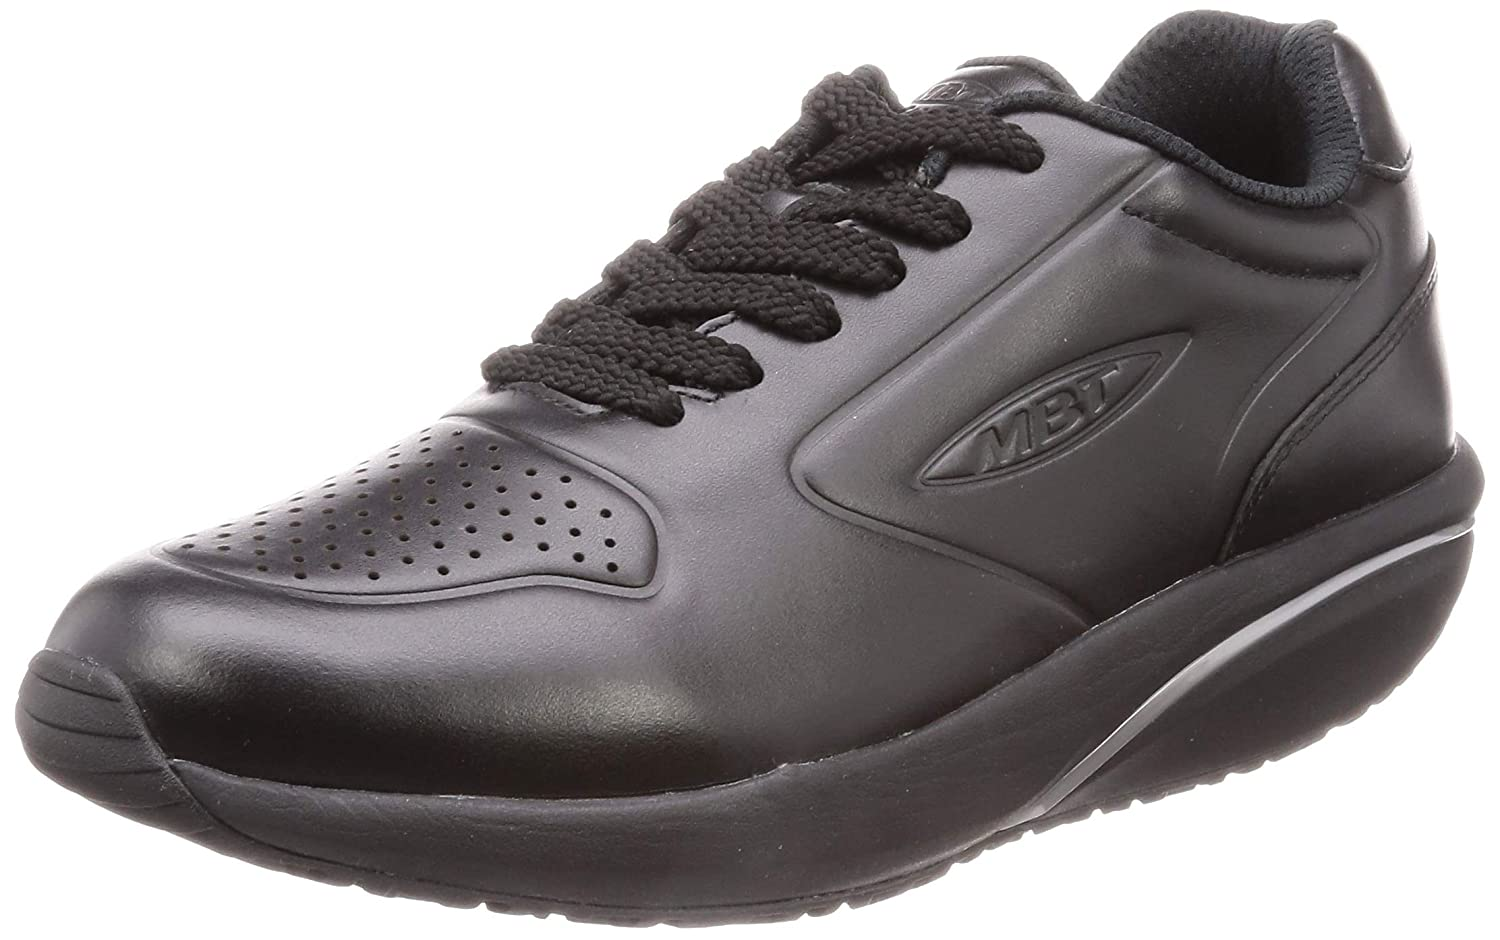 TALLA 40 EU. MBT Mbt-1997 Classic W Leather Winter, Zapatillas para Mujer